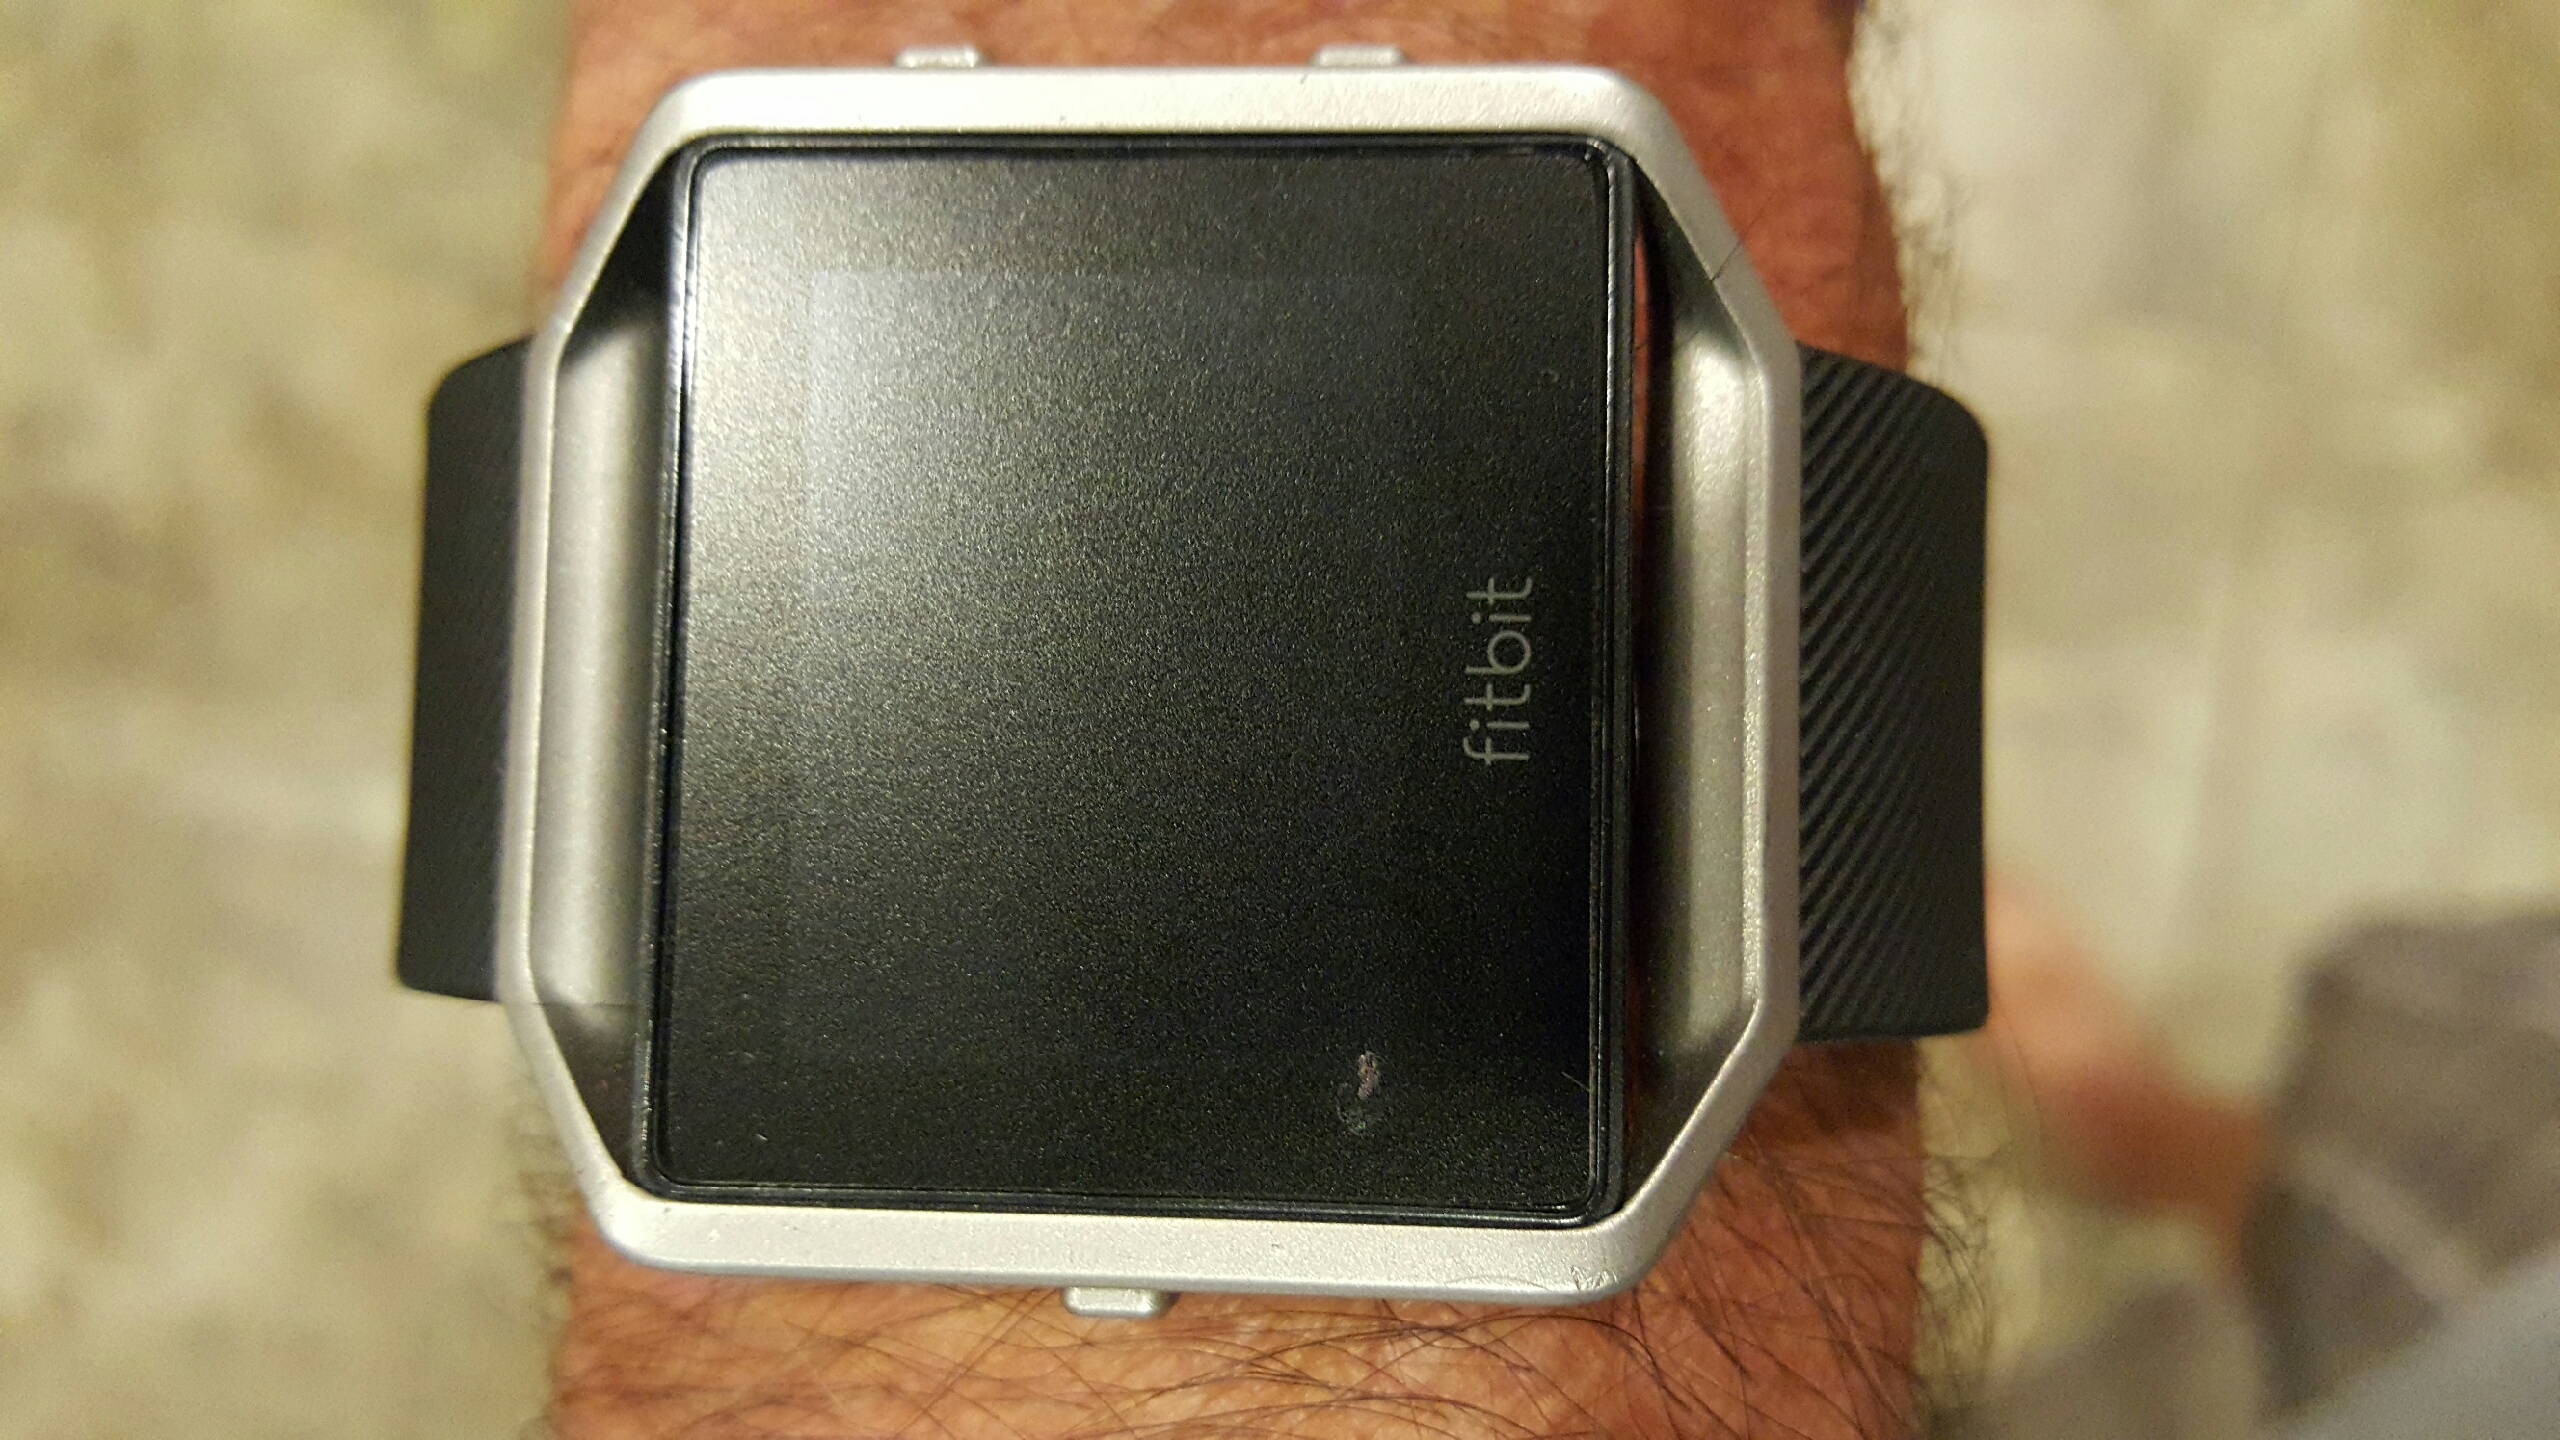 20 Fitbit Original Screen Pictures And Ideas On Meta Networks